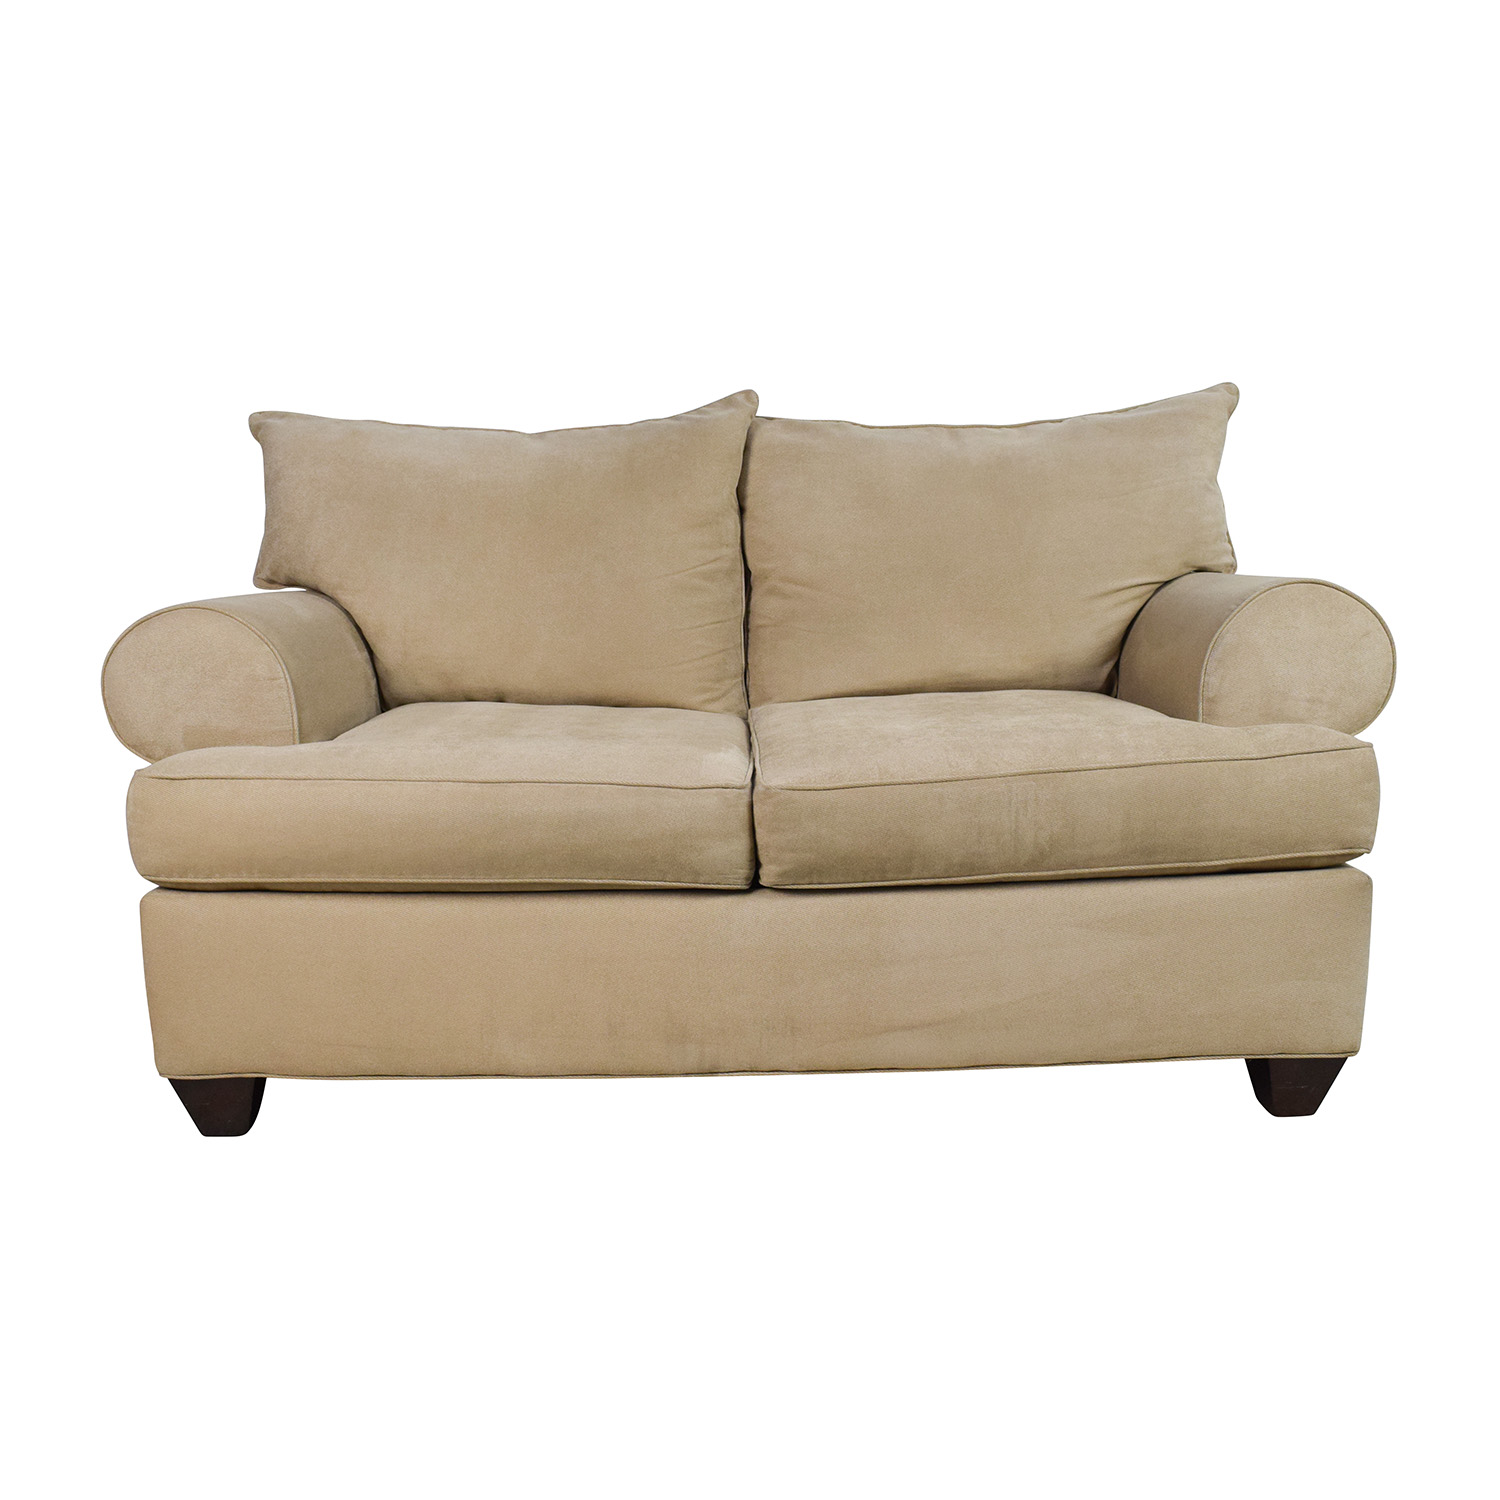 Raymour and Flanigan Raymour & Flanigan Beige Microfiber Loveseat discount